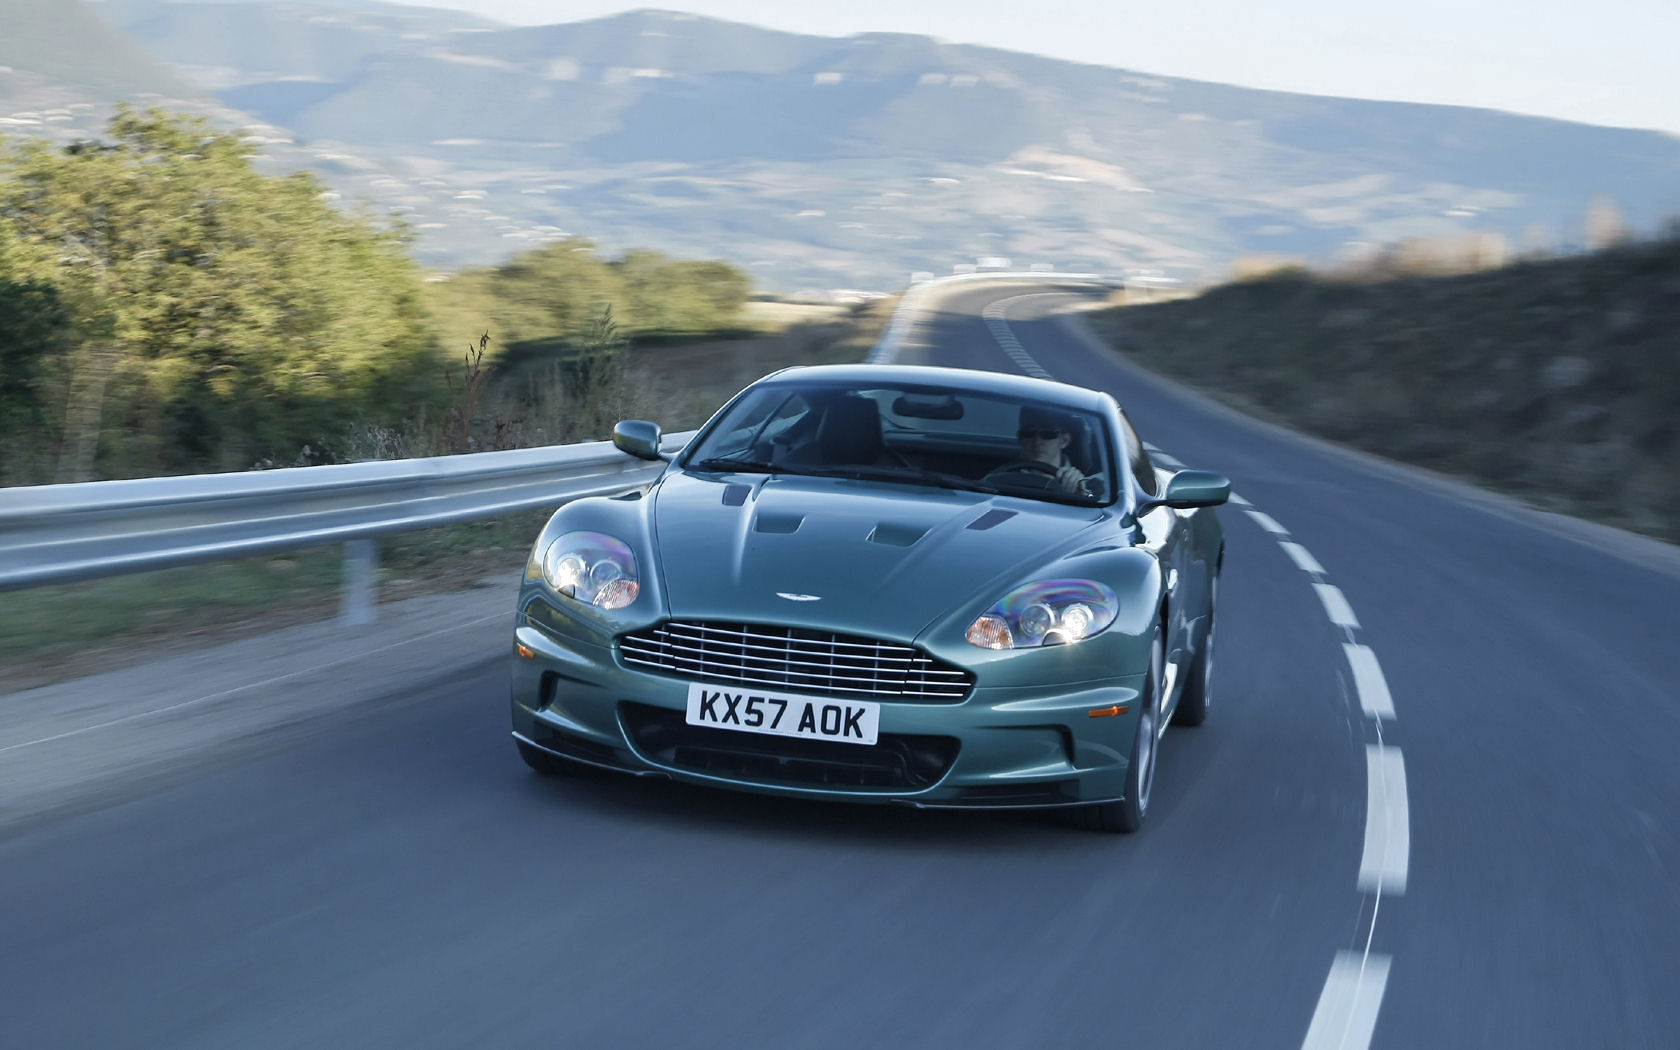 Aston martin dbs v12 coupe volante convertible free widescreen aston martin dbs desktop wallpaper publicscrutiny Image collections